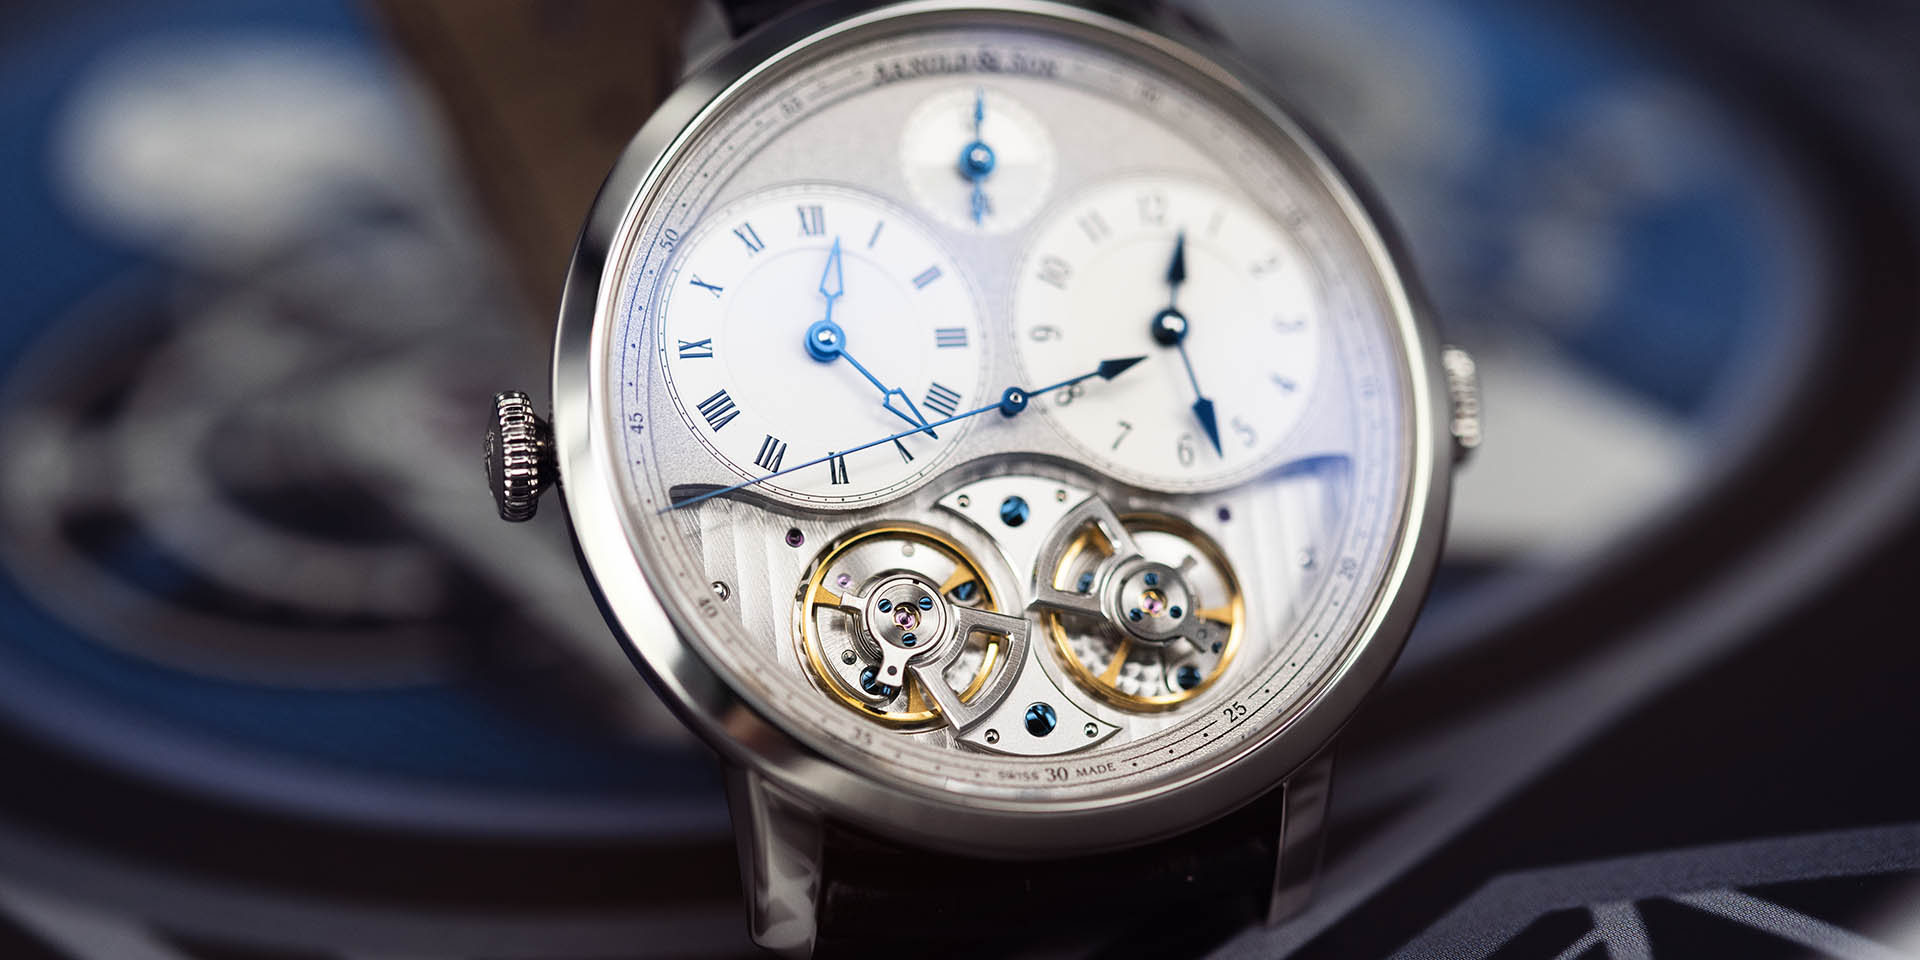 1dgas-s01a-c121s-arnold-son-dbg-equation-gmt-1.jpg